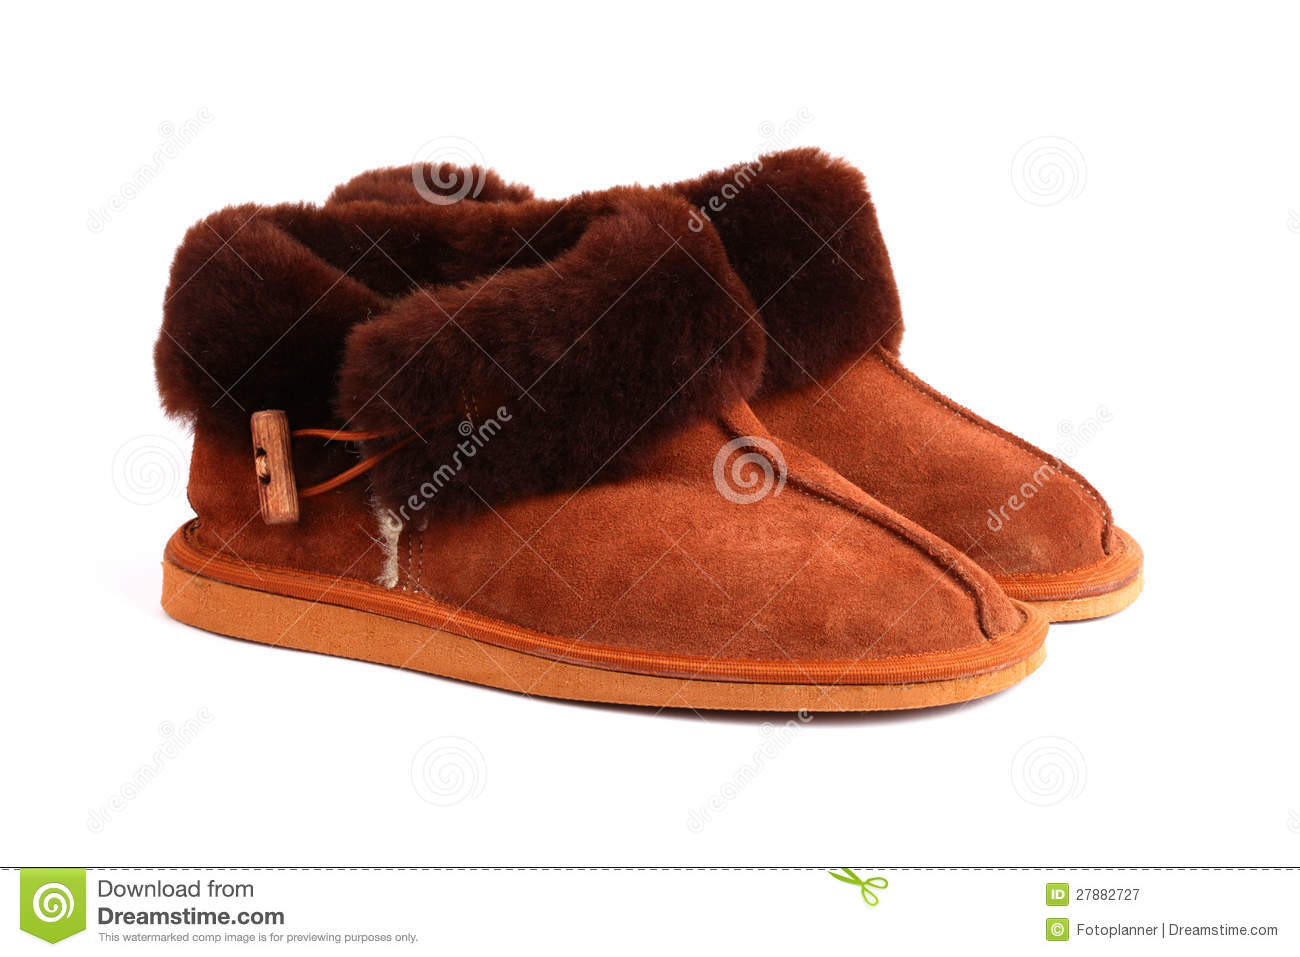 Royalty Free Stock Photography: Warm shoes